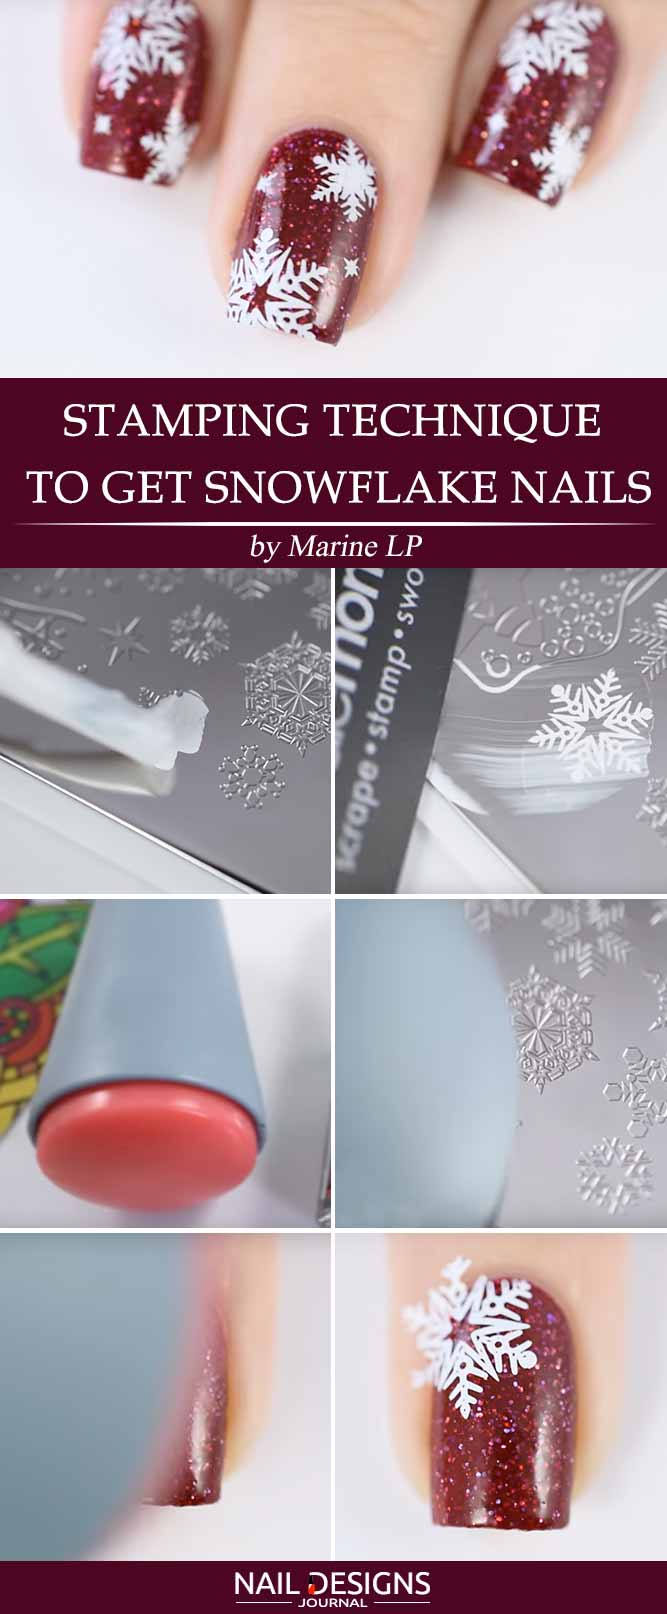 Stamping Technique to Get Snowflake Nails